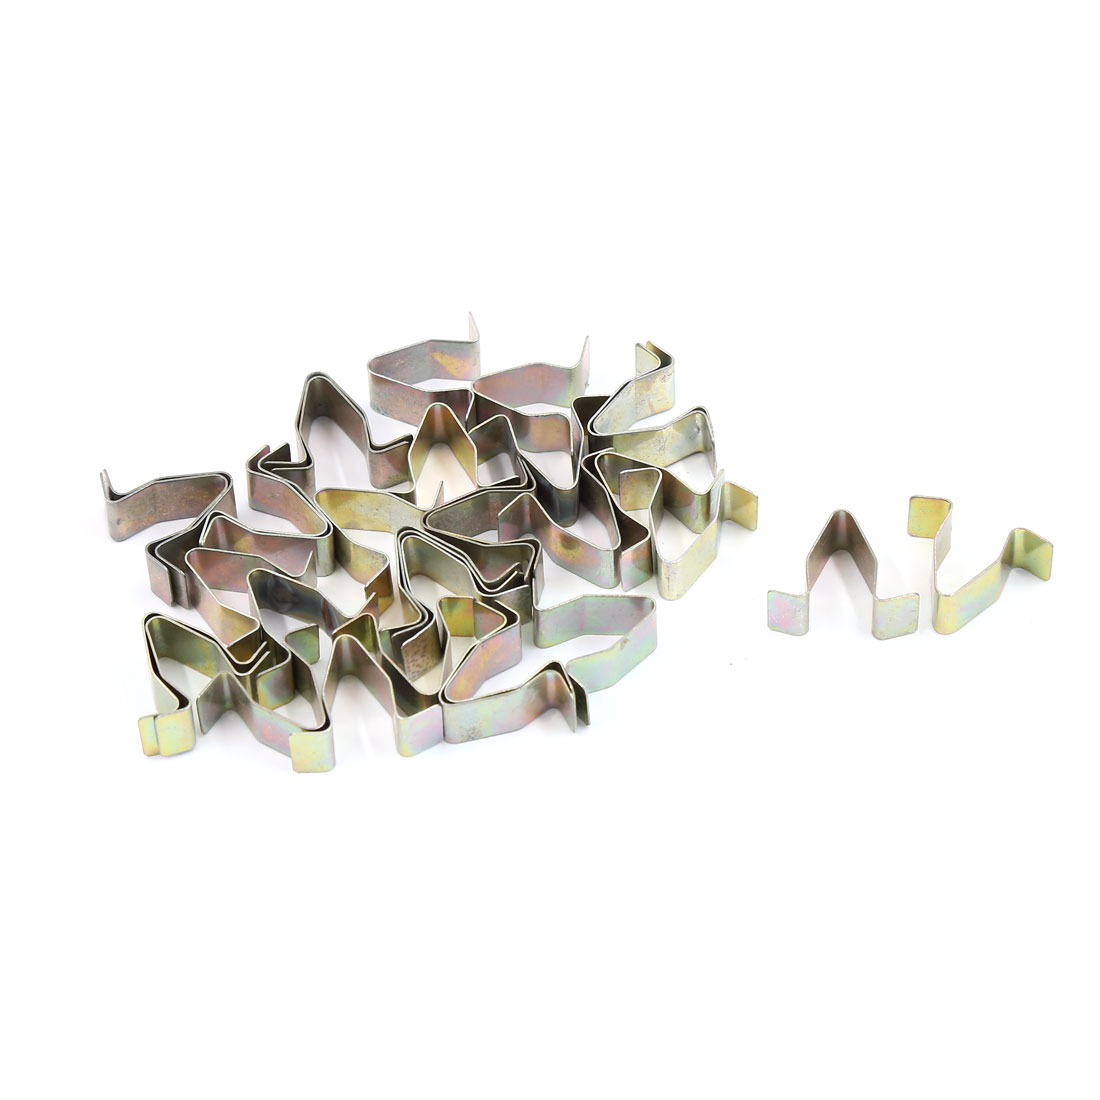 30 Pcs Metal Car Dash Dashboard Rivets Trim Fastener Bronze Tone for 8mm Hole